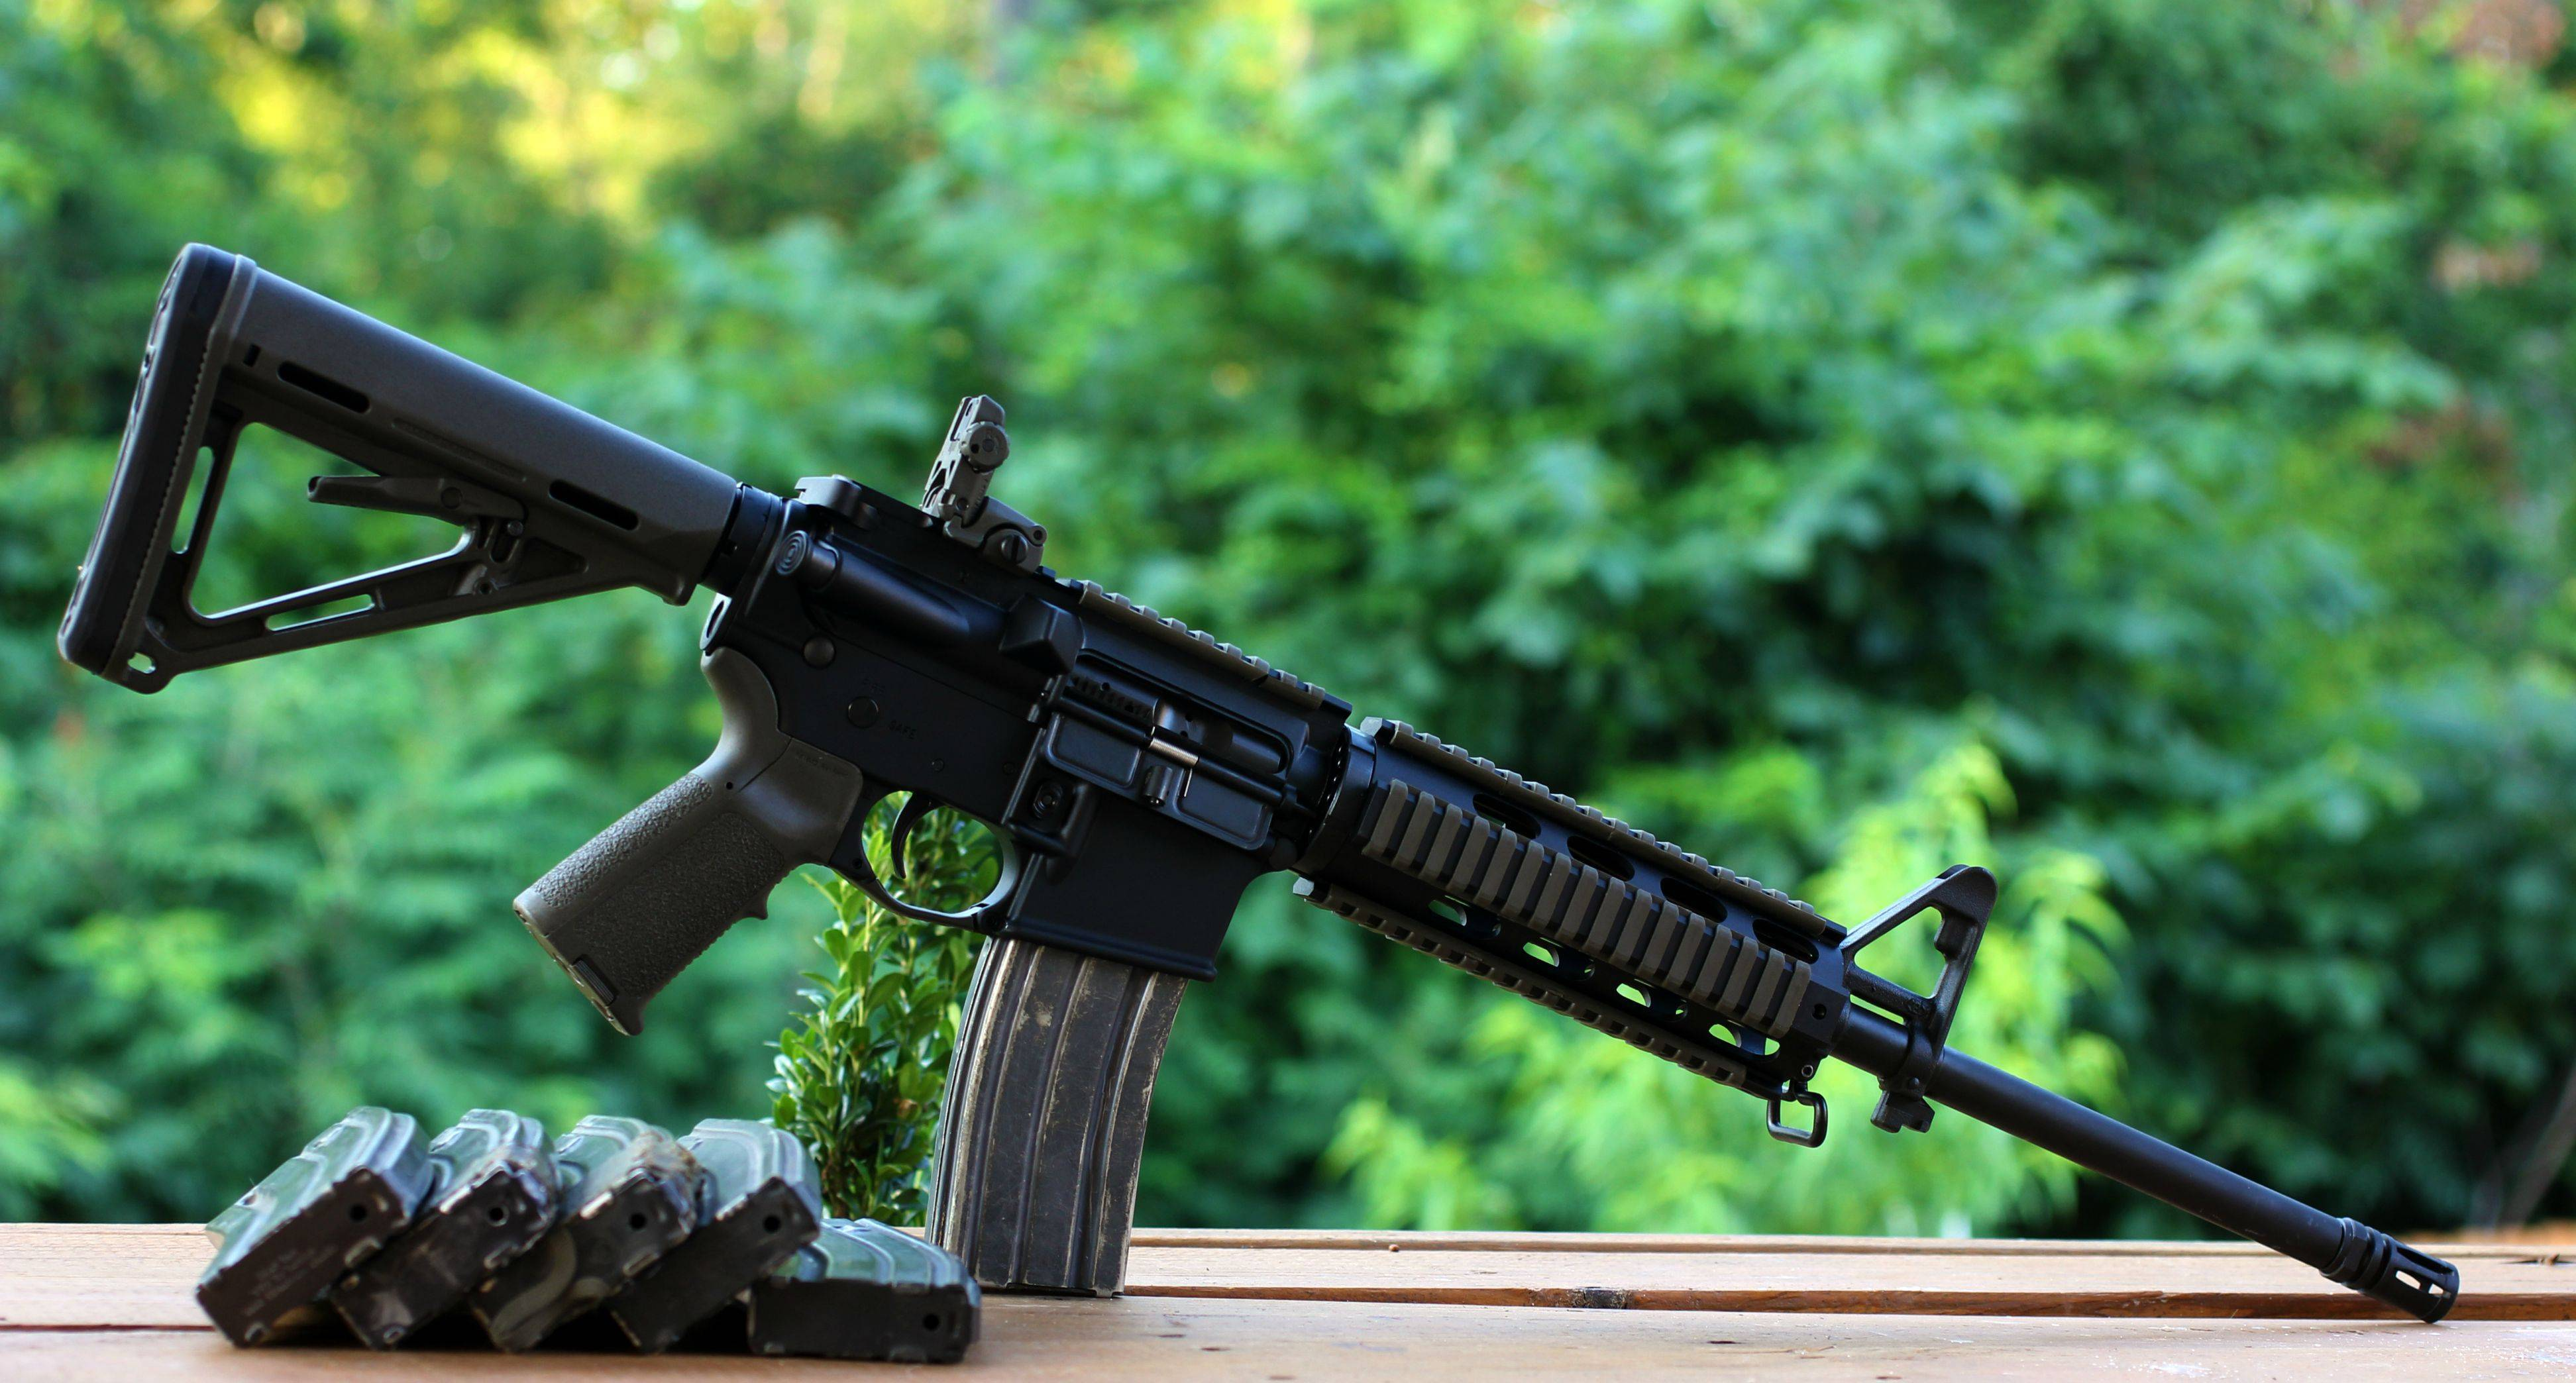 Ar 15 Wallpaper Download Free Beautiful Full Hd: Tactical Shotgun Wallpaper